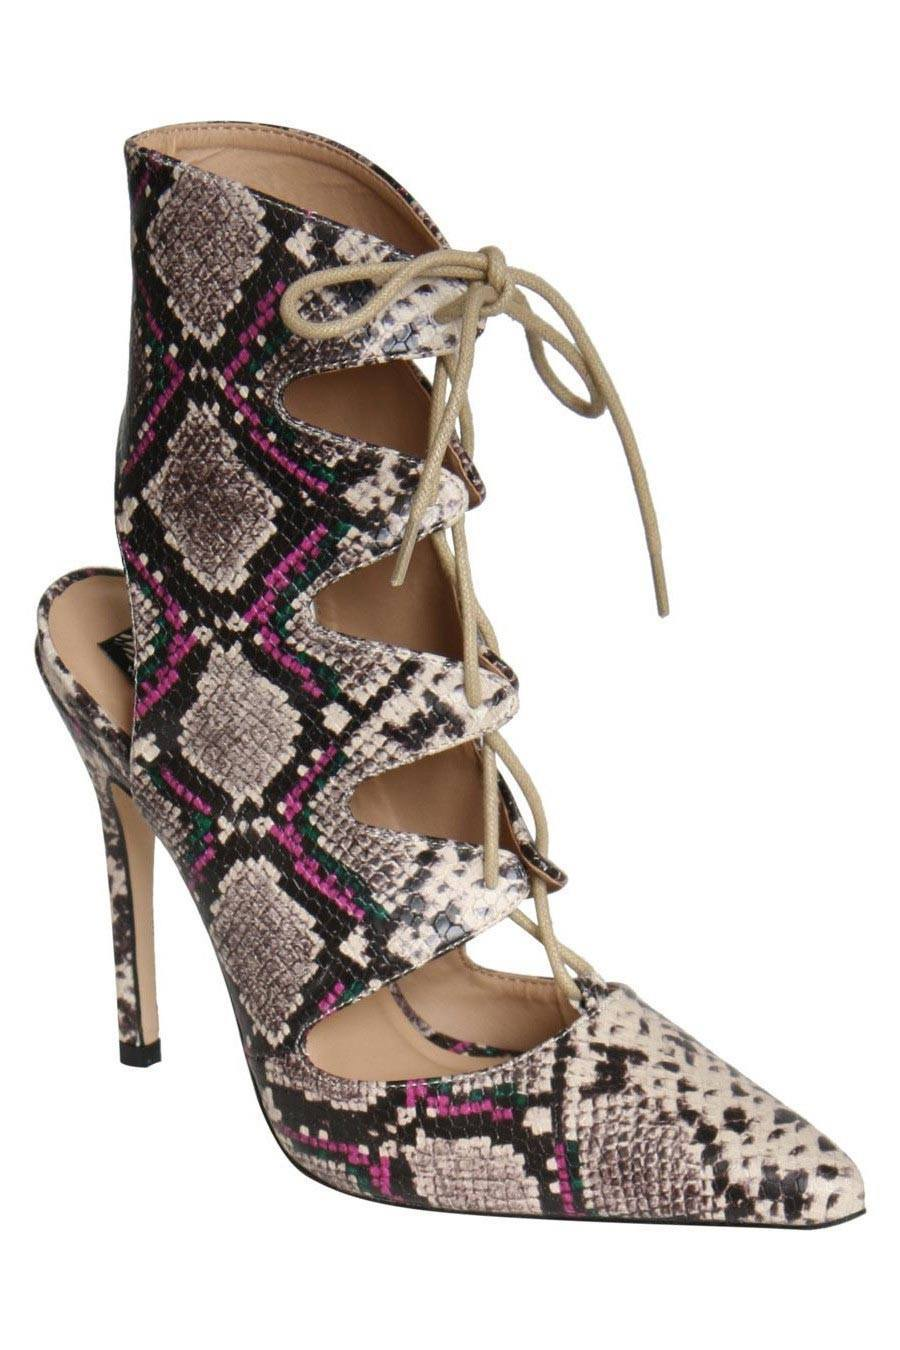 Abbie Lace Up High Heel Snake Print Shoes in Brown FRONT